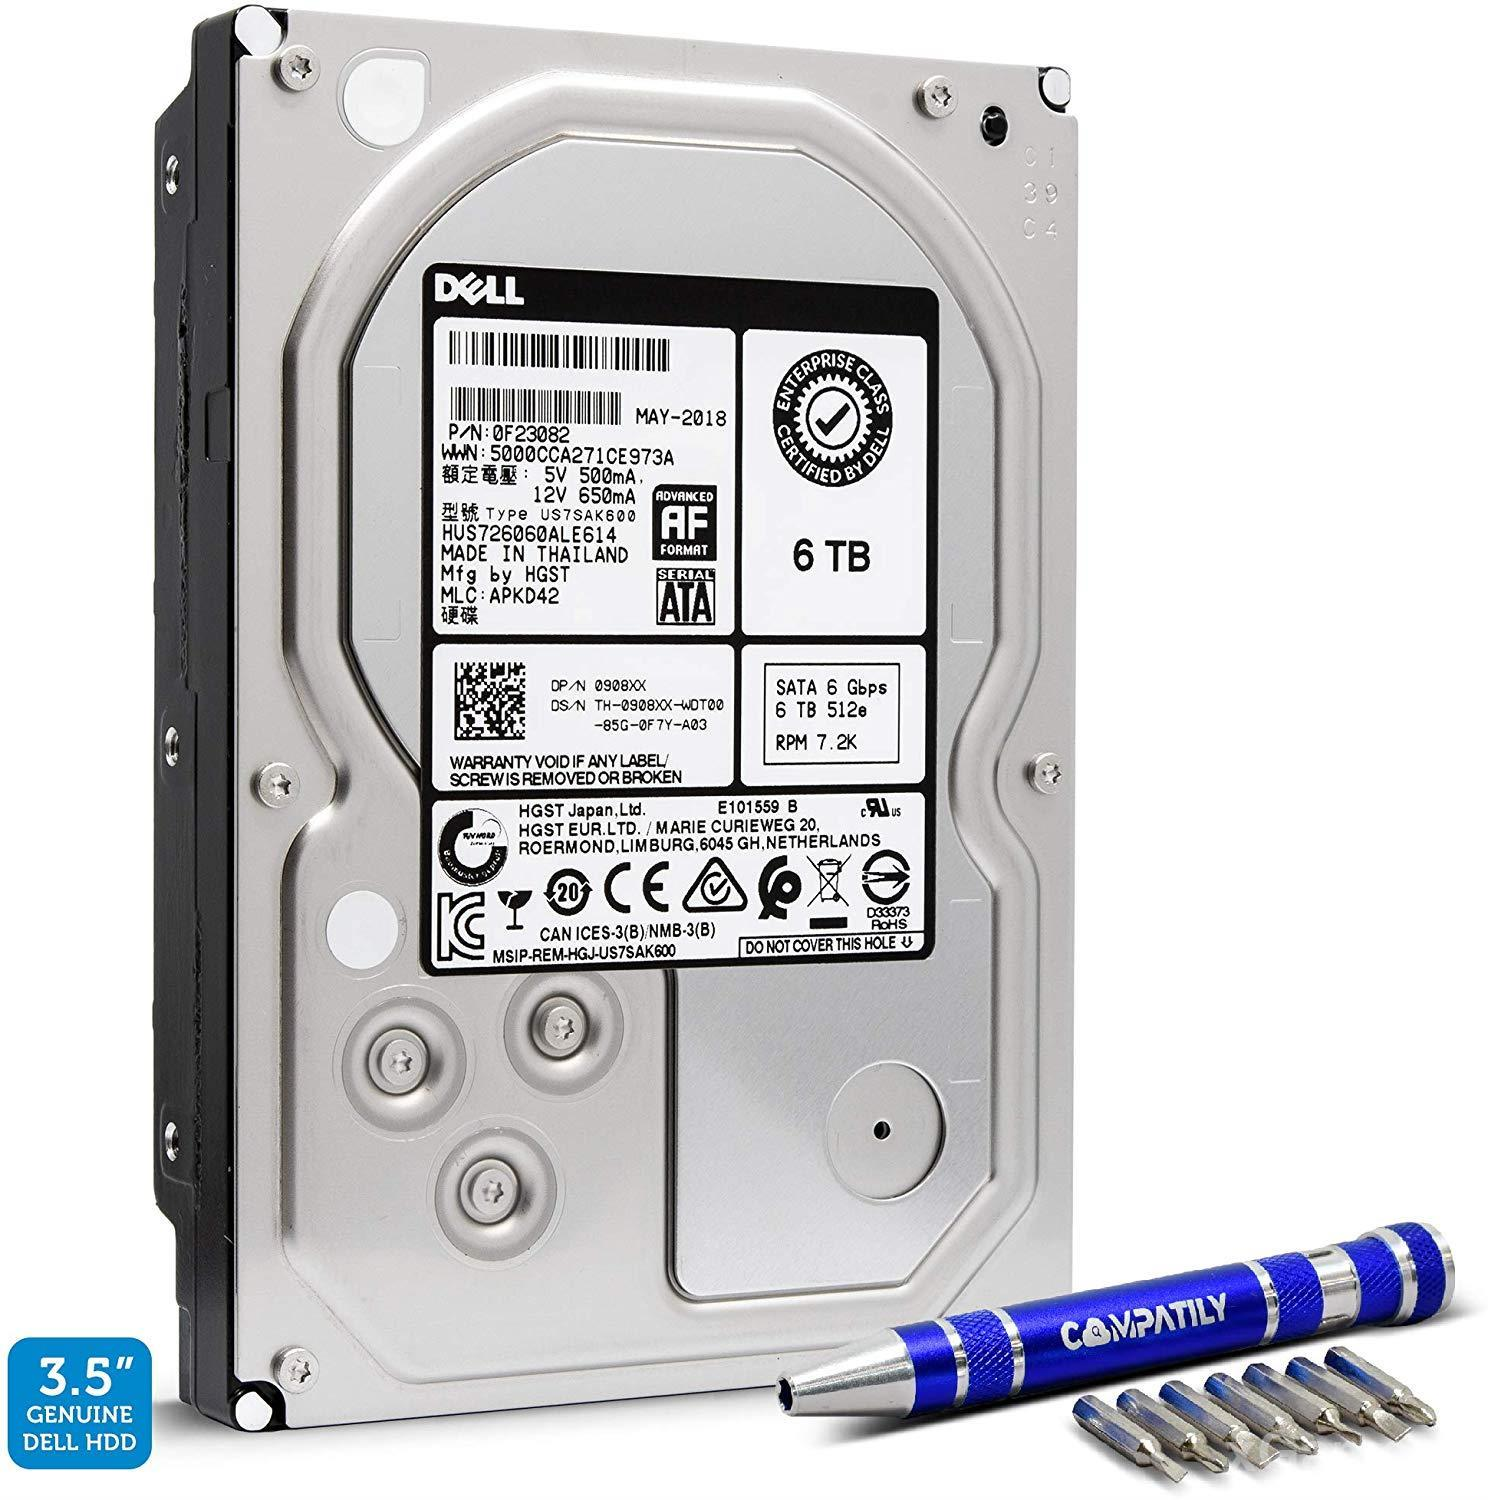 Best Hard Drives for Gaming - Dell HGST 6TB SATA III